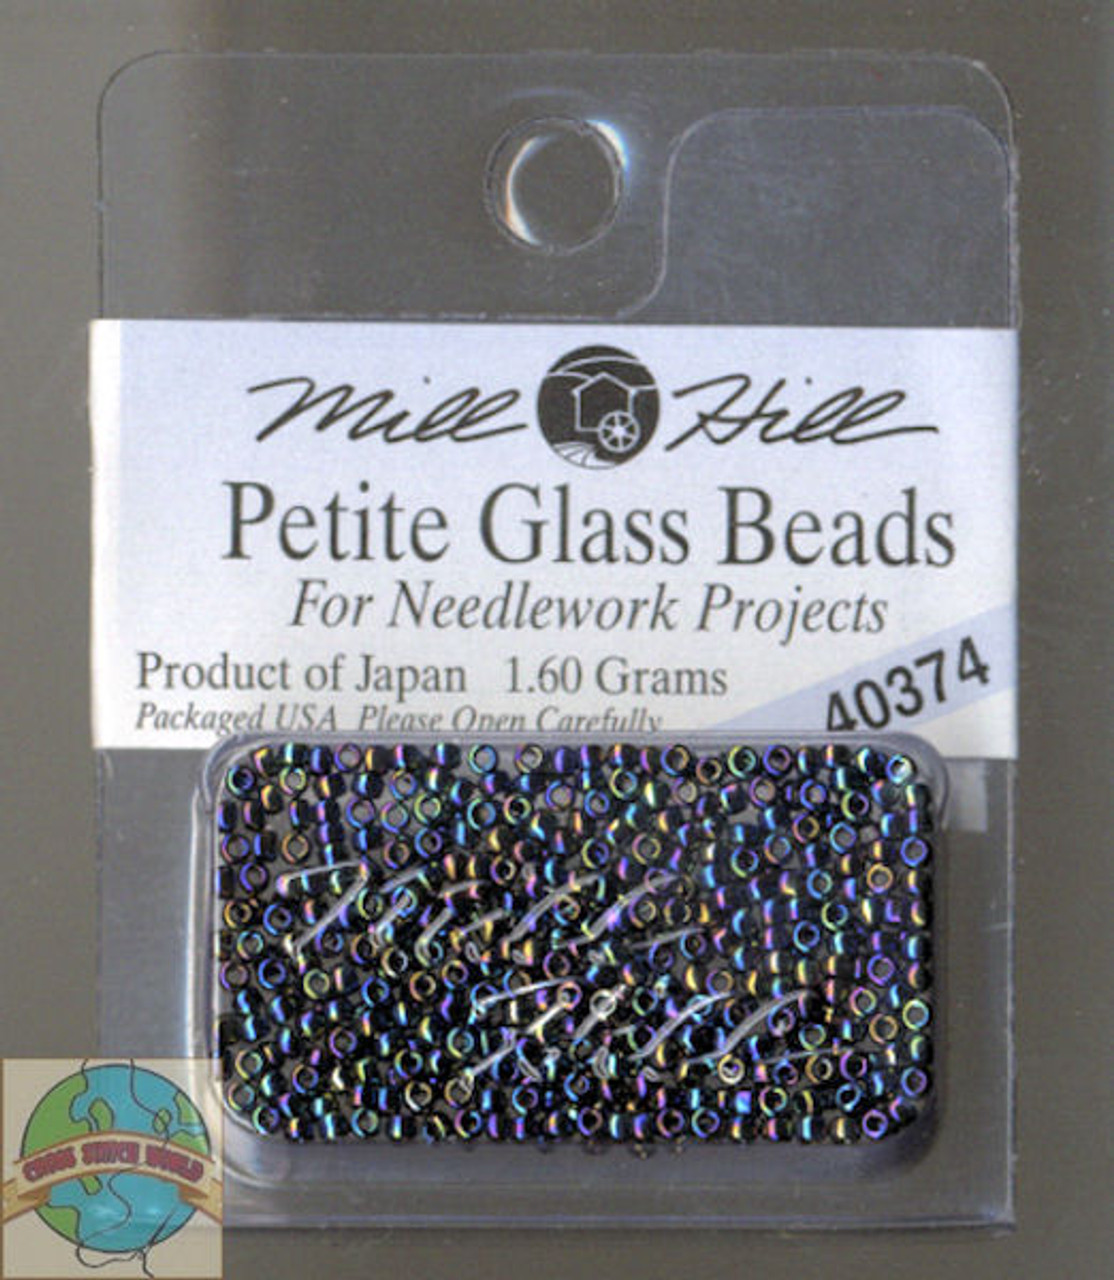 Mill Hill Petite Glass Beads 1.60g Rainbow